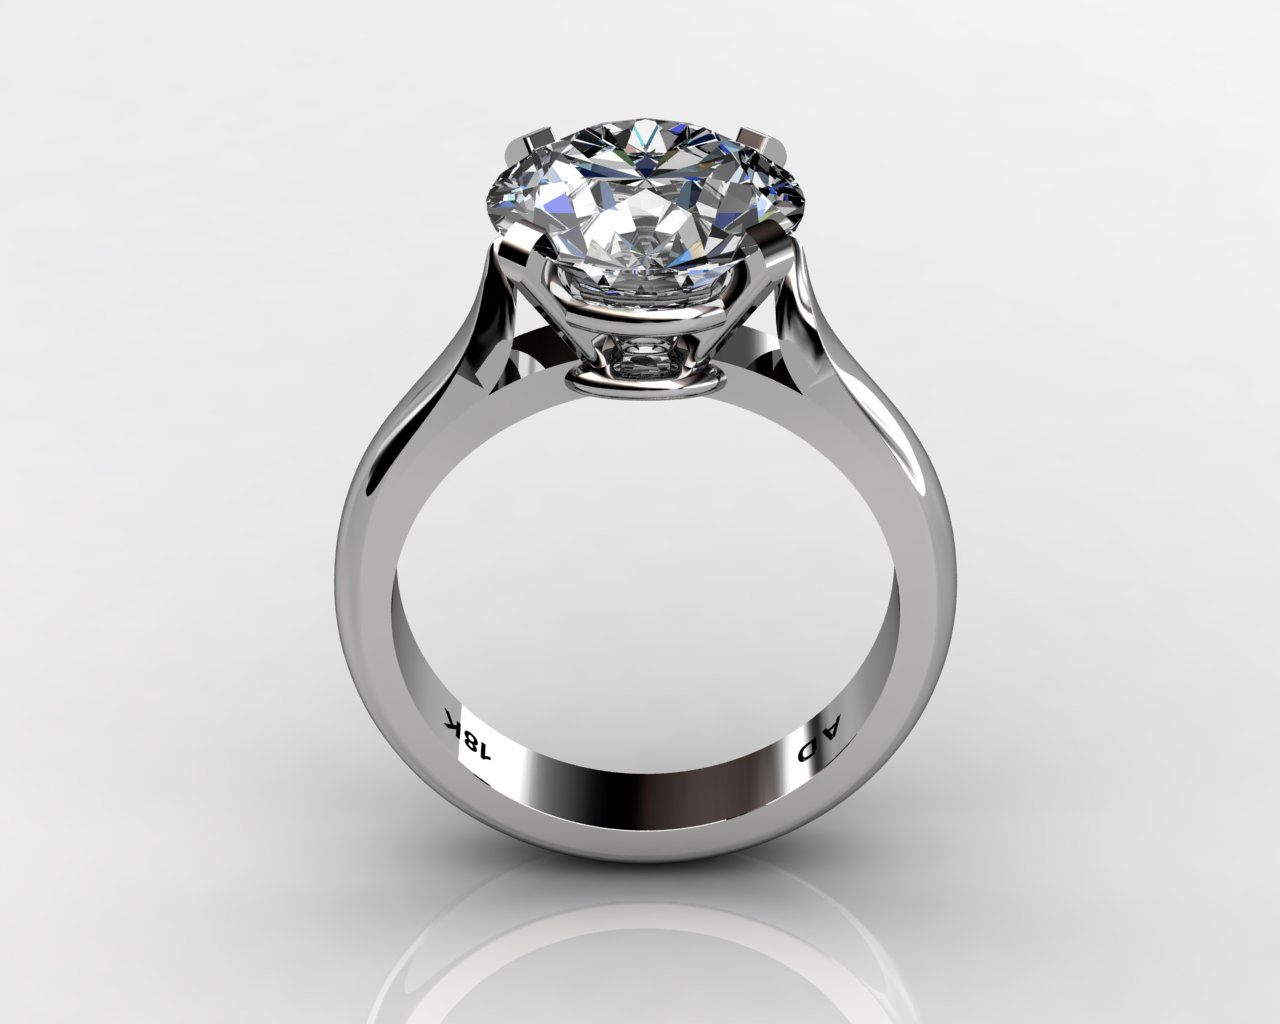 engagement rings round diamond wedding rings Round Cut Diamond Solitaire Engagement Wedding Ring South Bay Gold